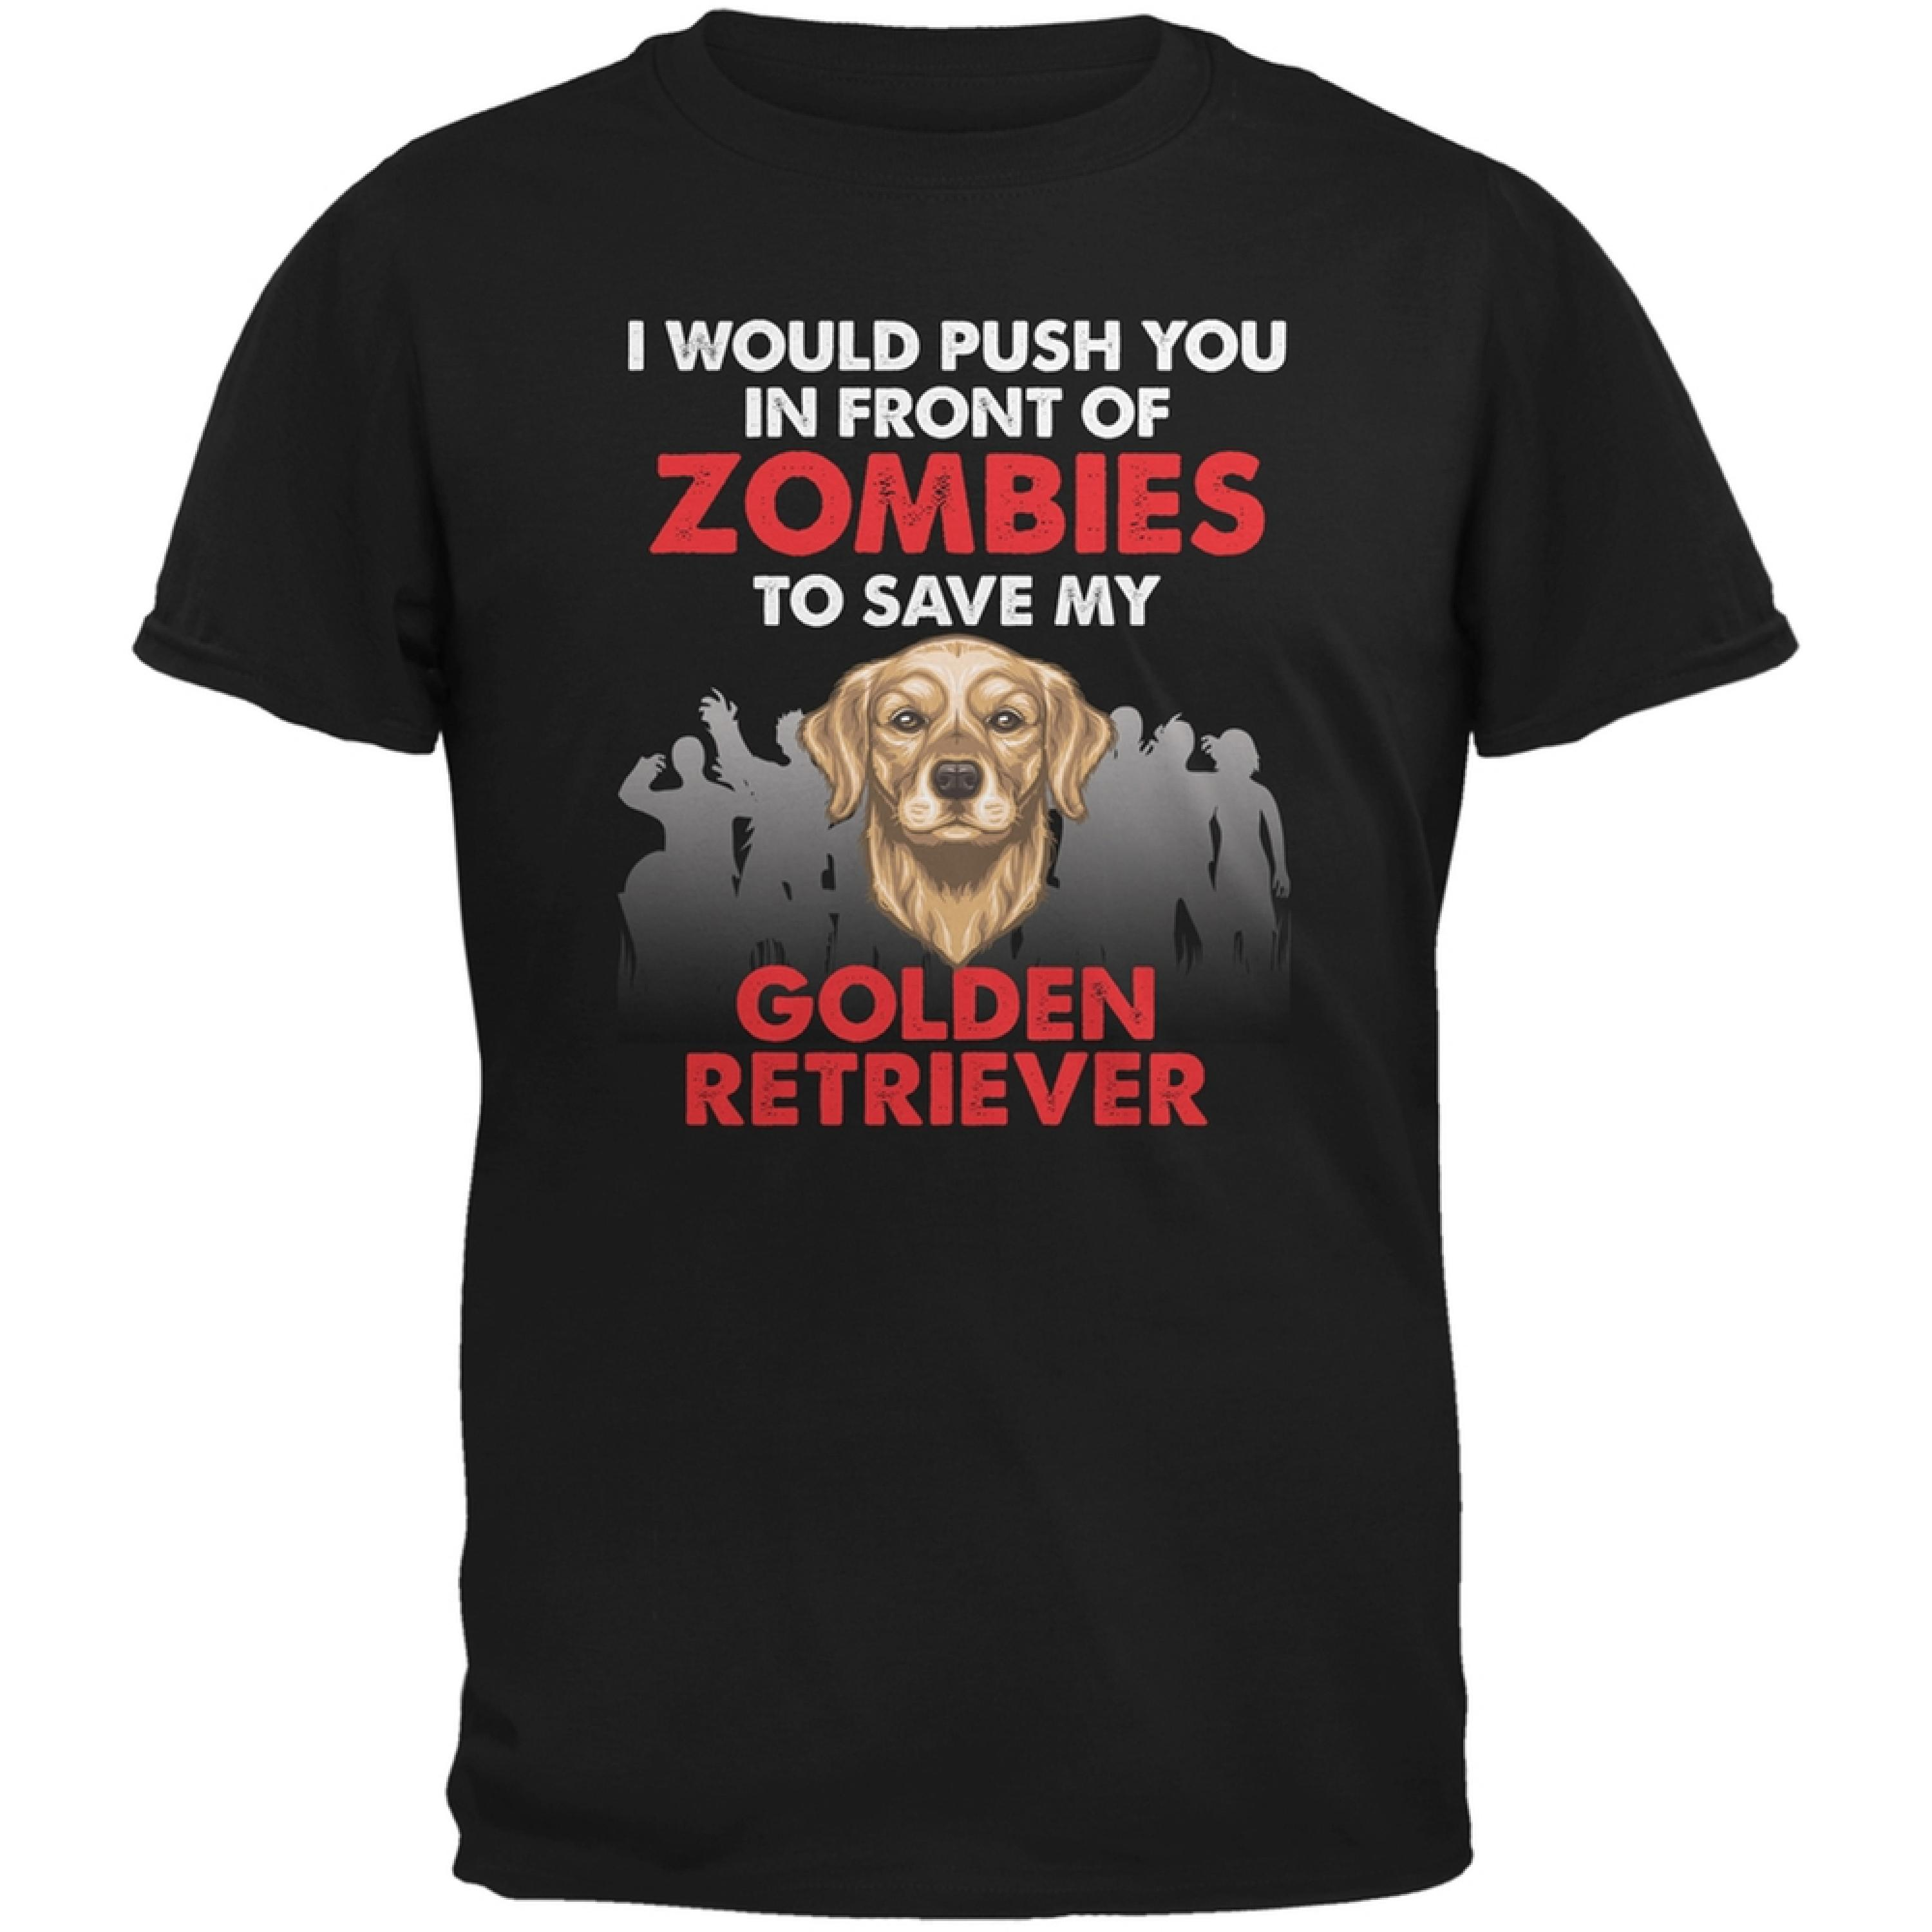 I Would Push You Zombies Golden Retriever Black Adult T-Shirt